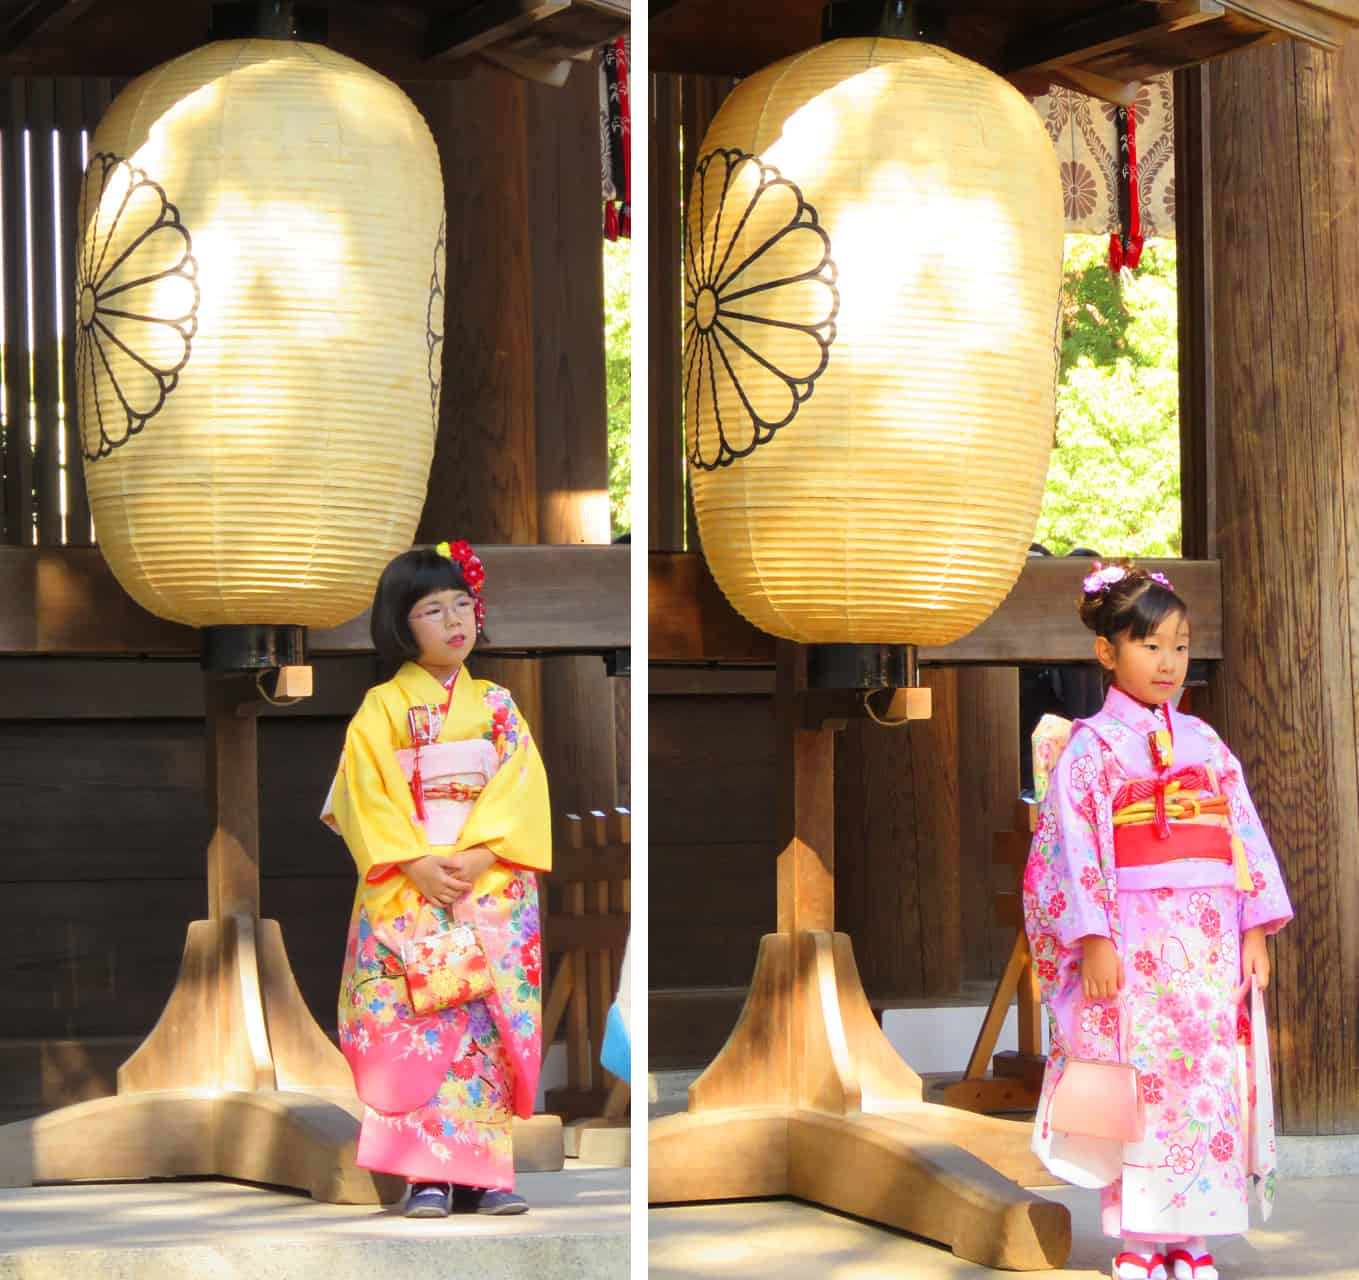 meiji shrine, Tokyo. The Friendly Faces of Japan (and some pets)